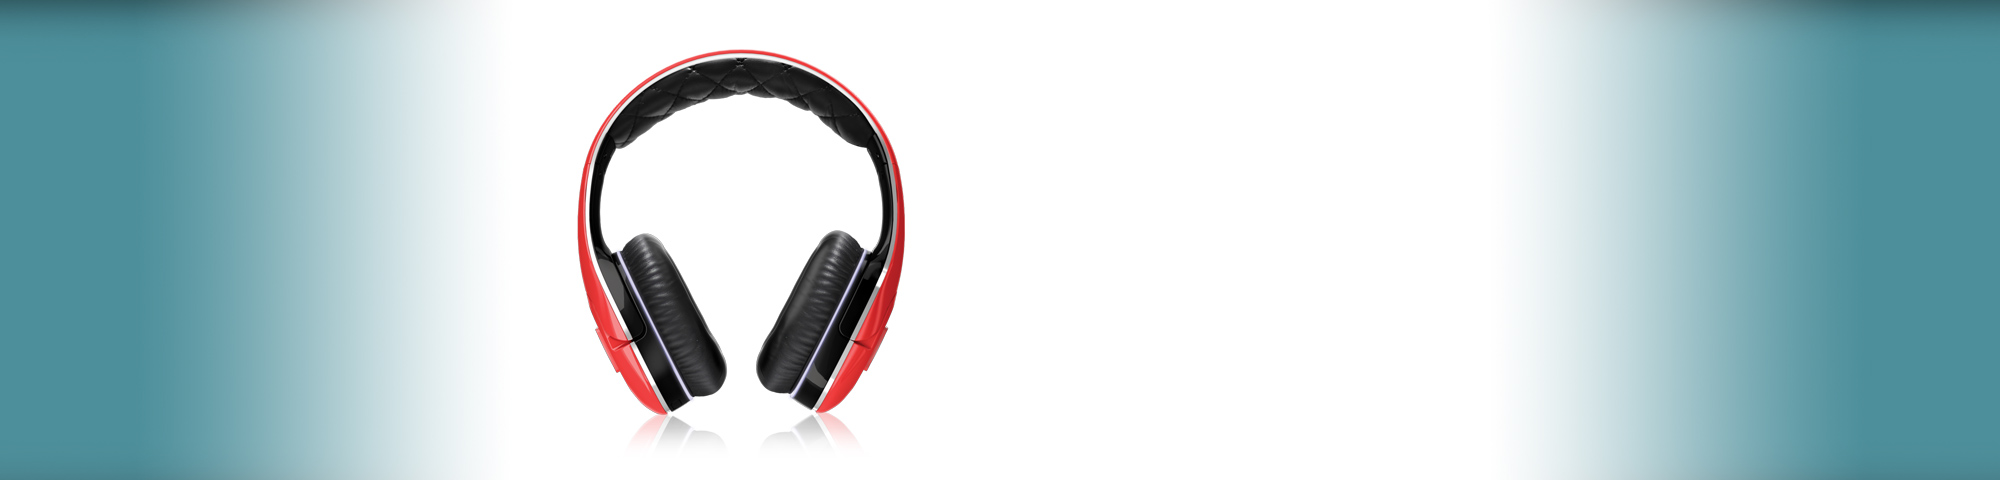 fd_header_home_headphones